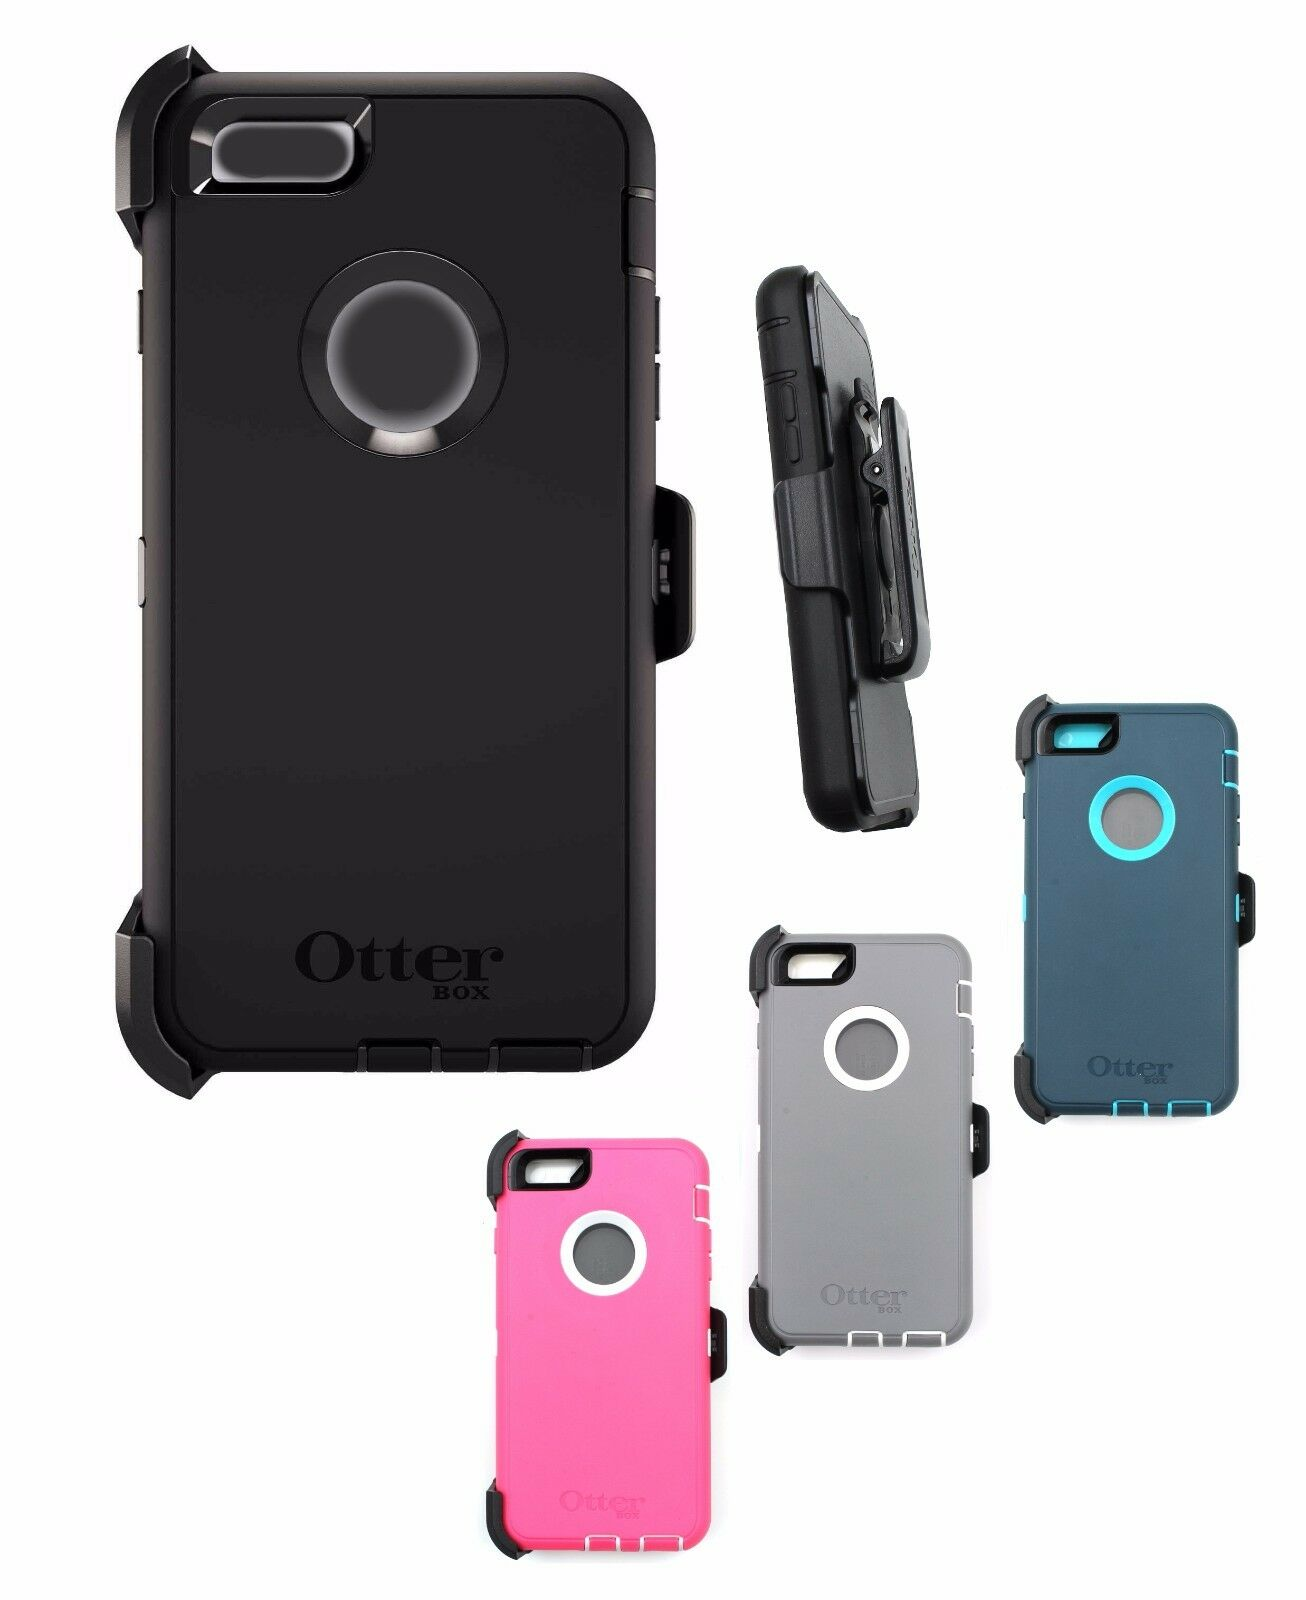 new-otterbox-defender-series-case-holster-belt-clip-for-iphone-6-plus-5-5